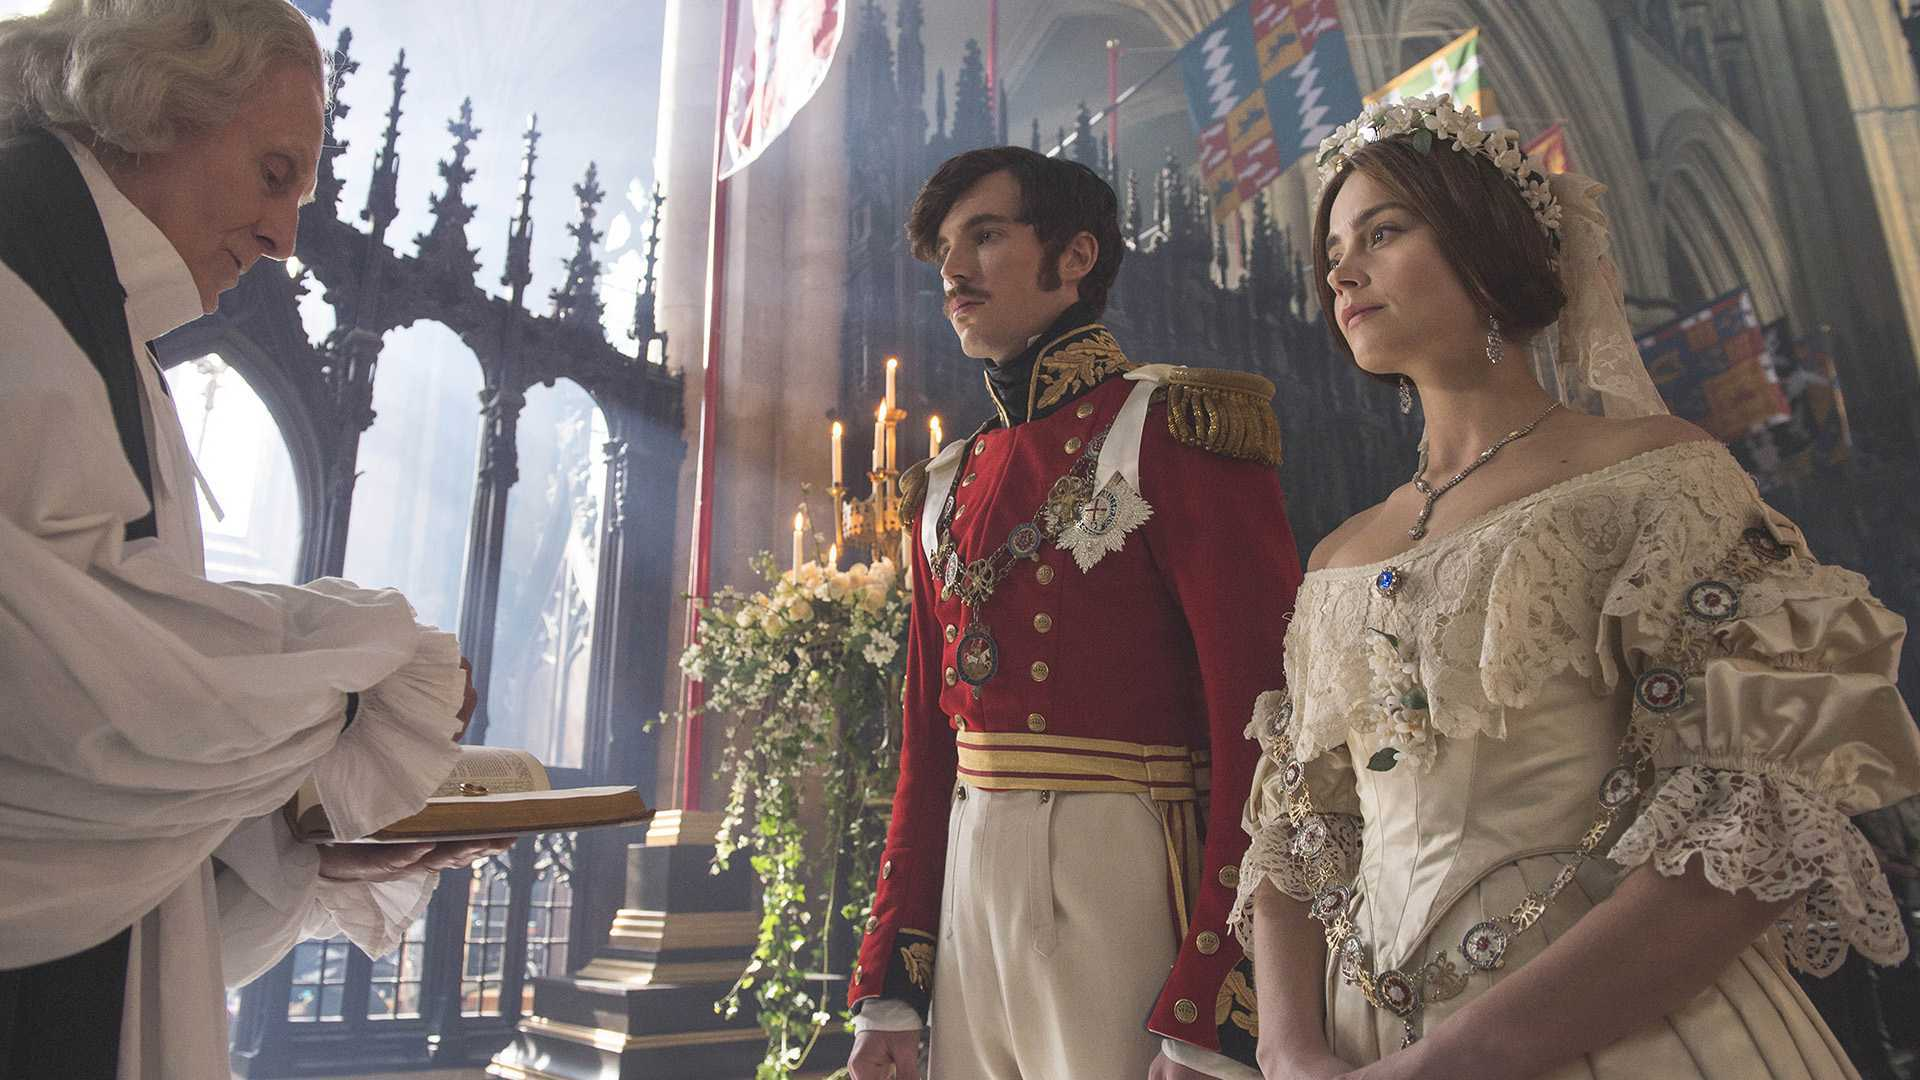 Prince Albert and Queen Victoria in the Victoria TV series